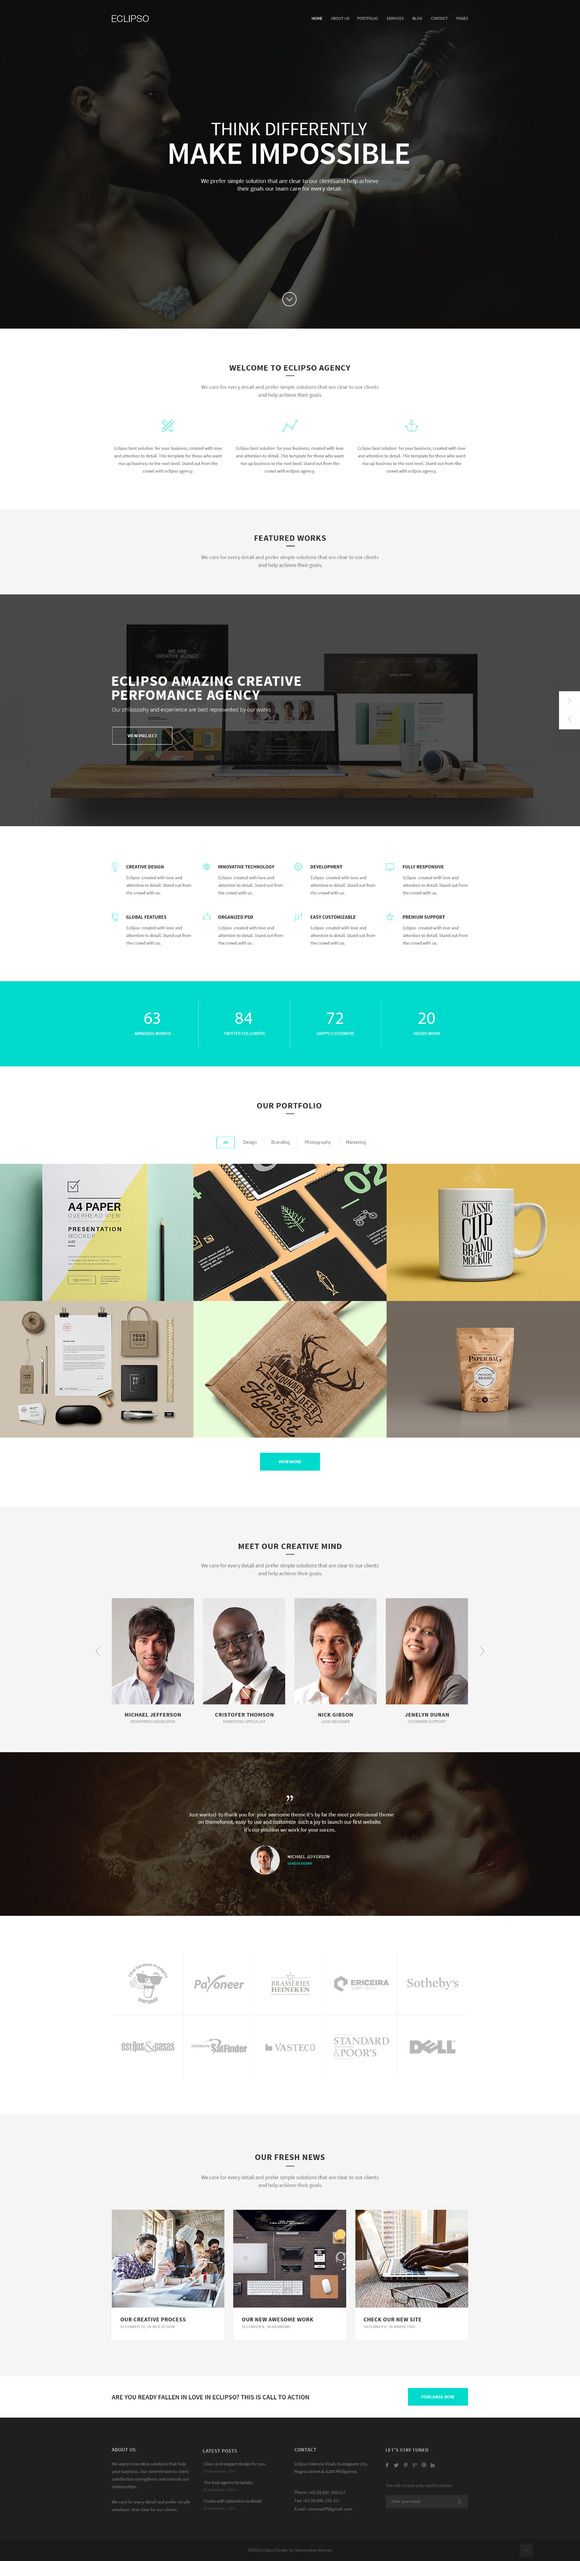 Check out Eclipso - Creative Agency by Romaximus on Creative Market